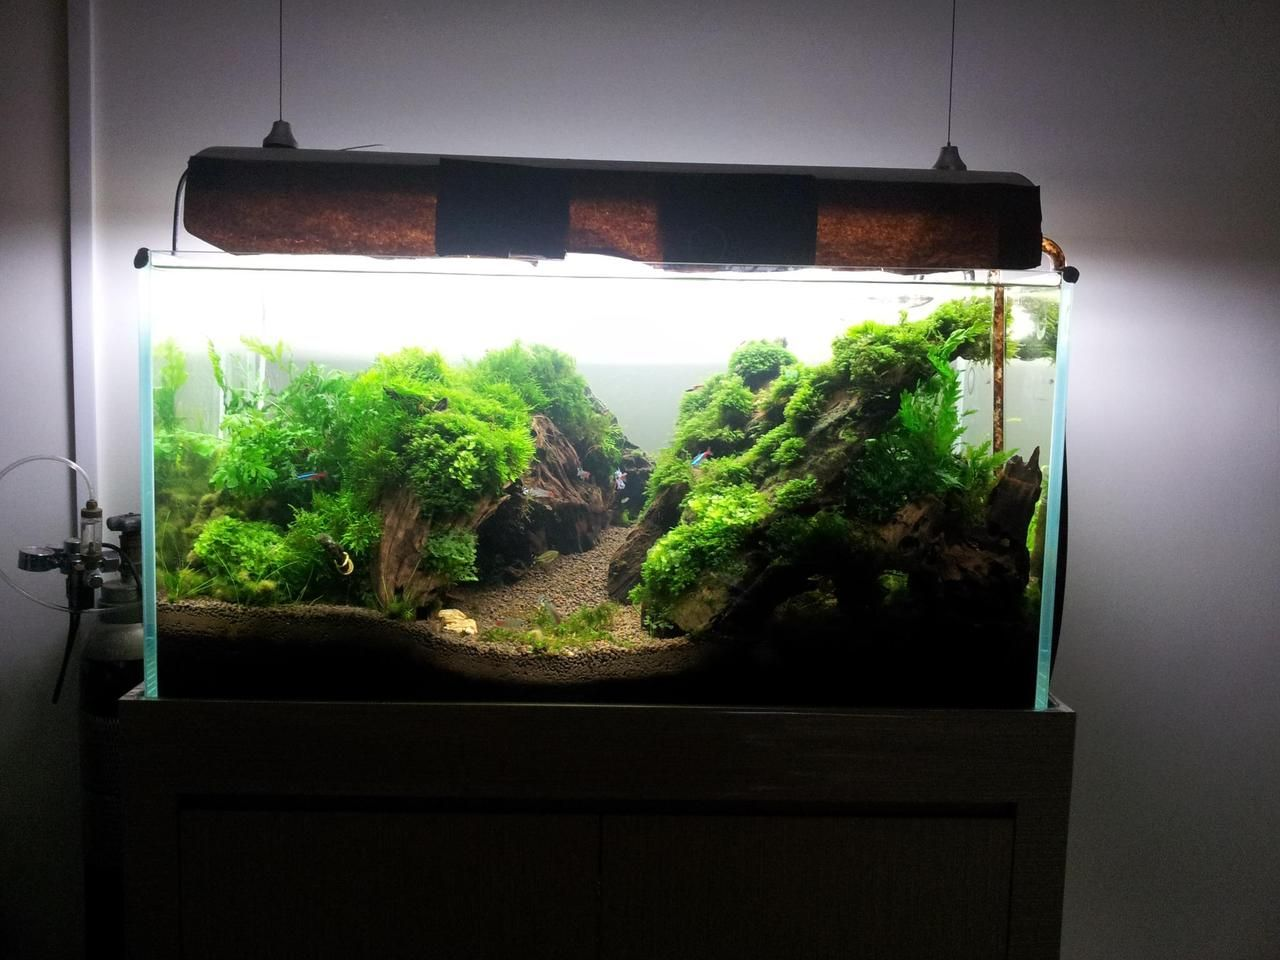 Fish aquarium how to maintain -  Mossy Tank I Really Like The Simplicity Of Moss Tanks They Are Easy To